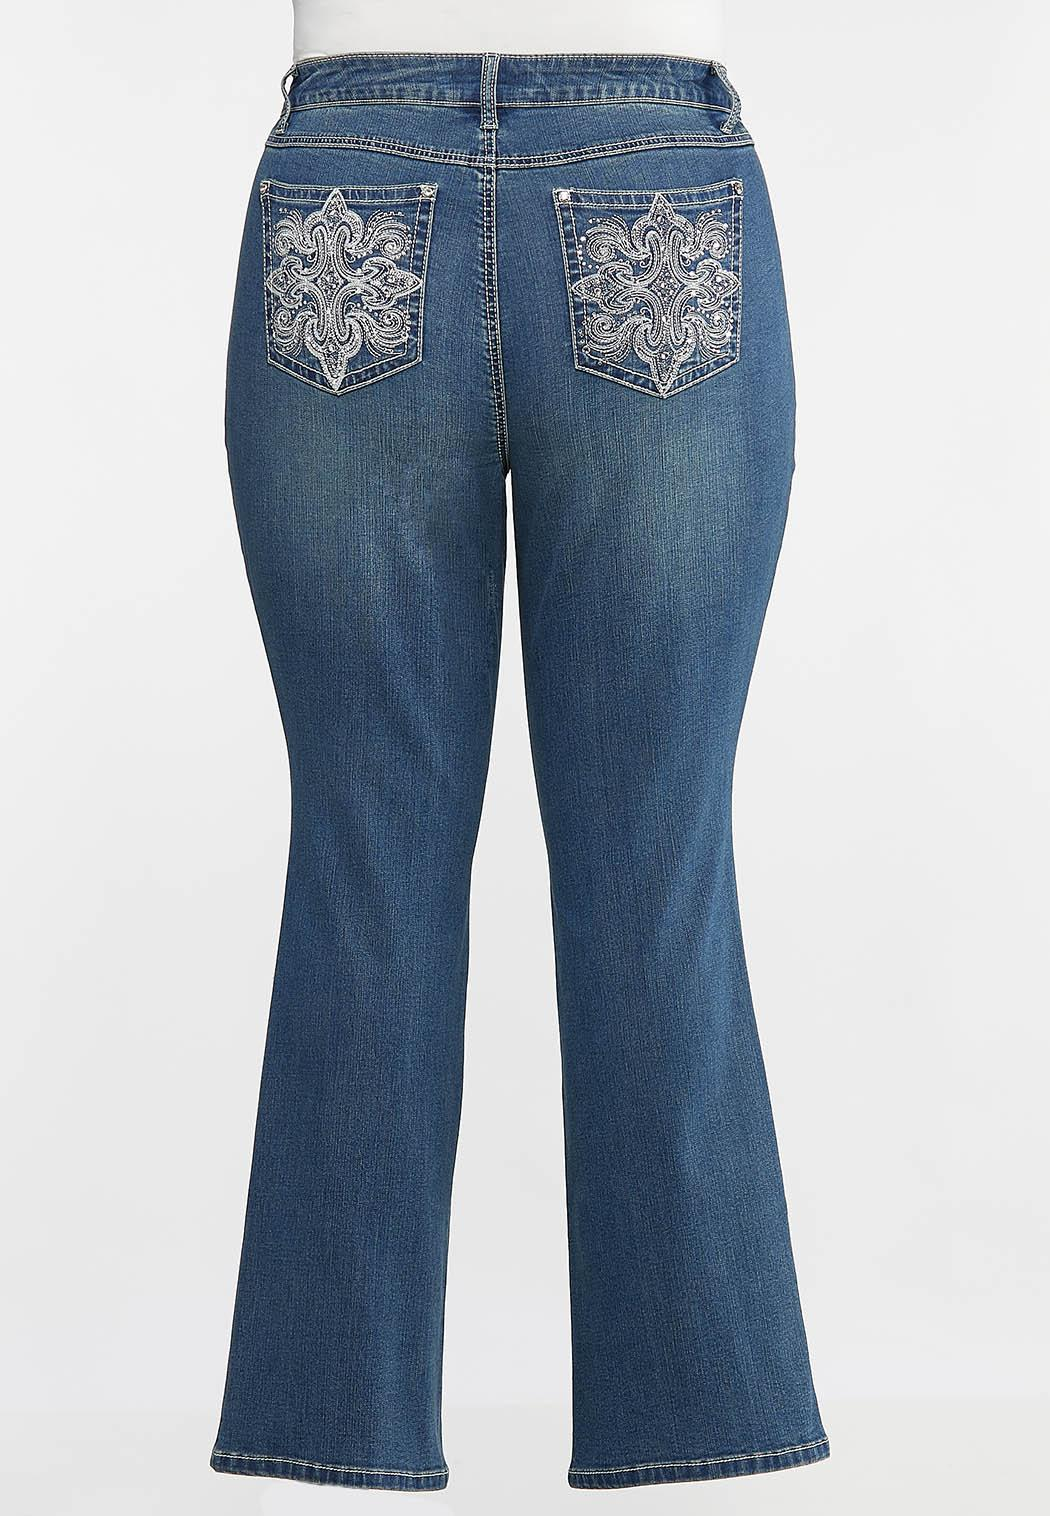 Plus Size Burst of Bling Bootcut Jeans